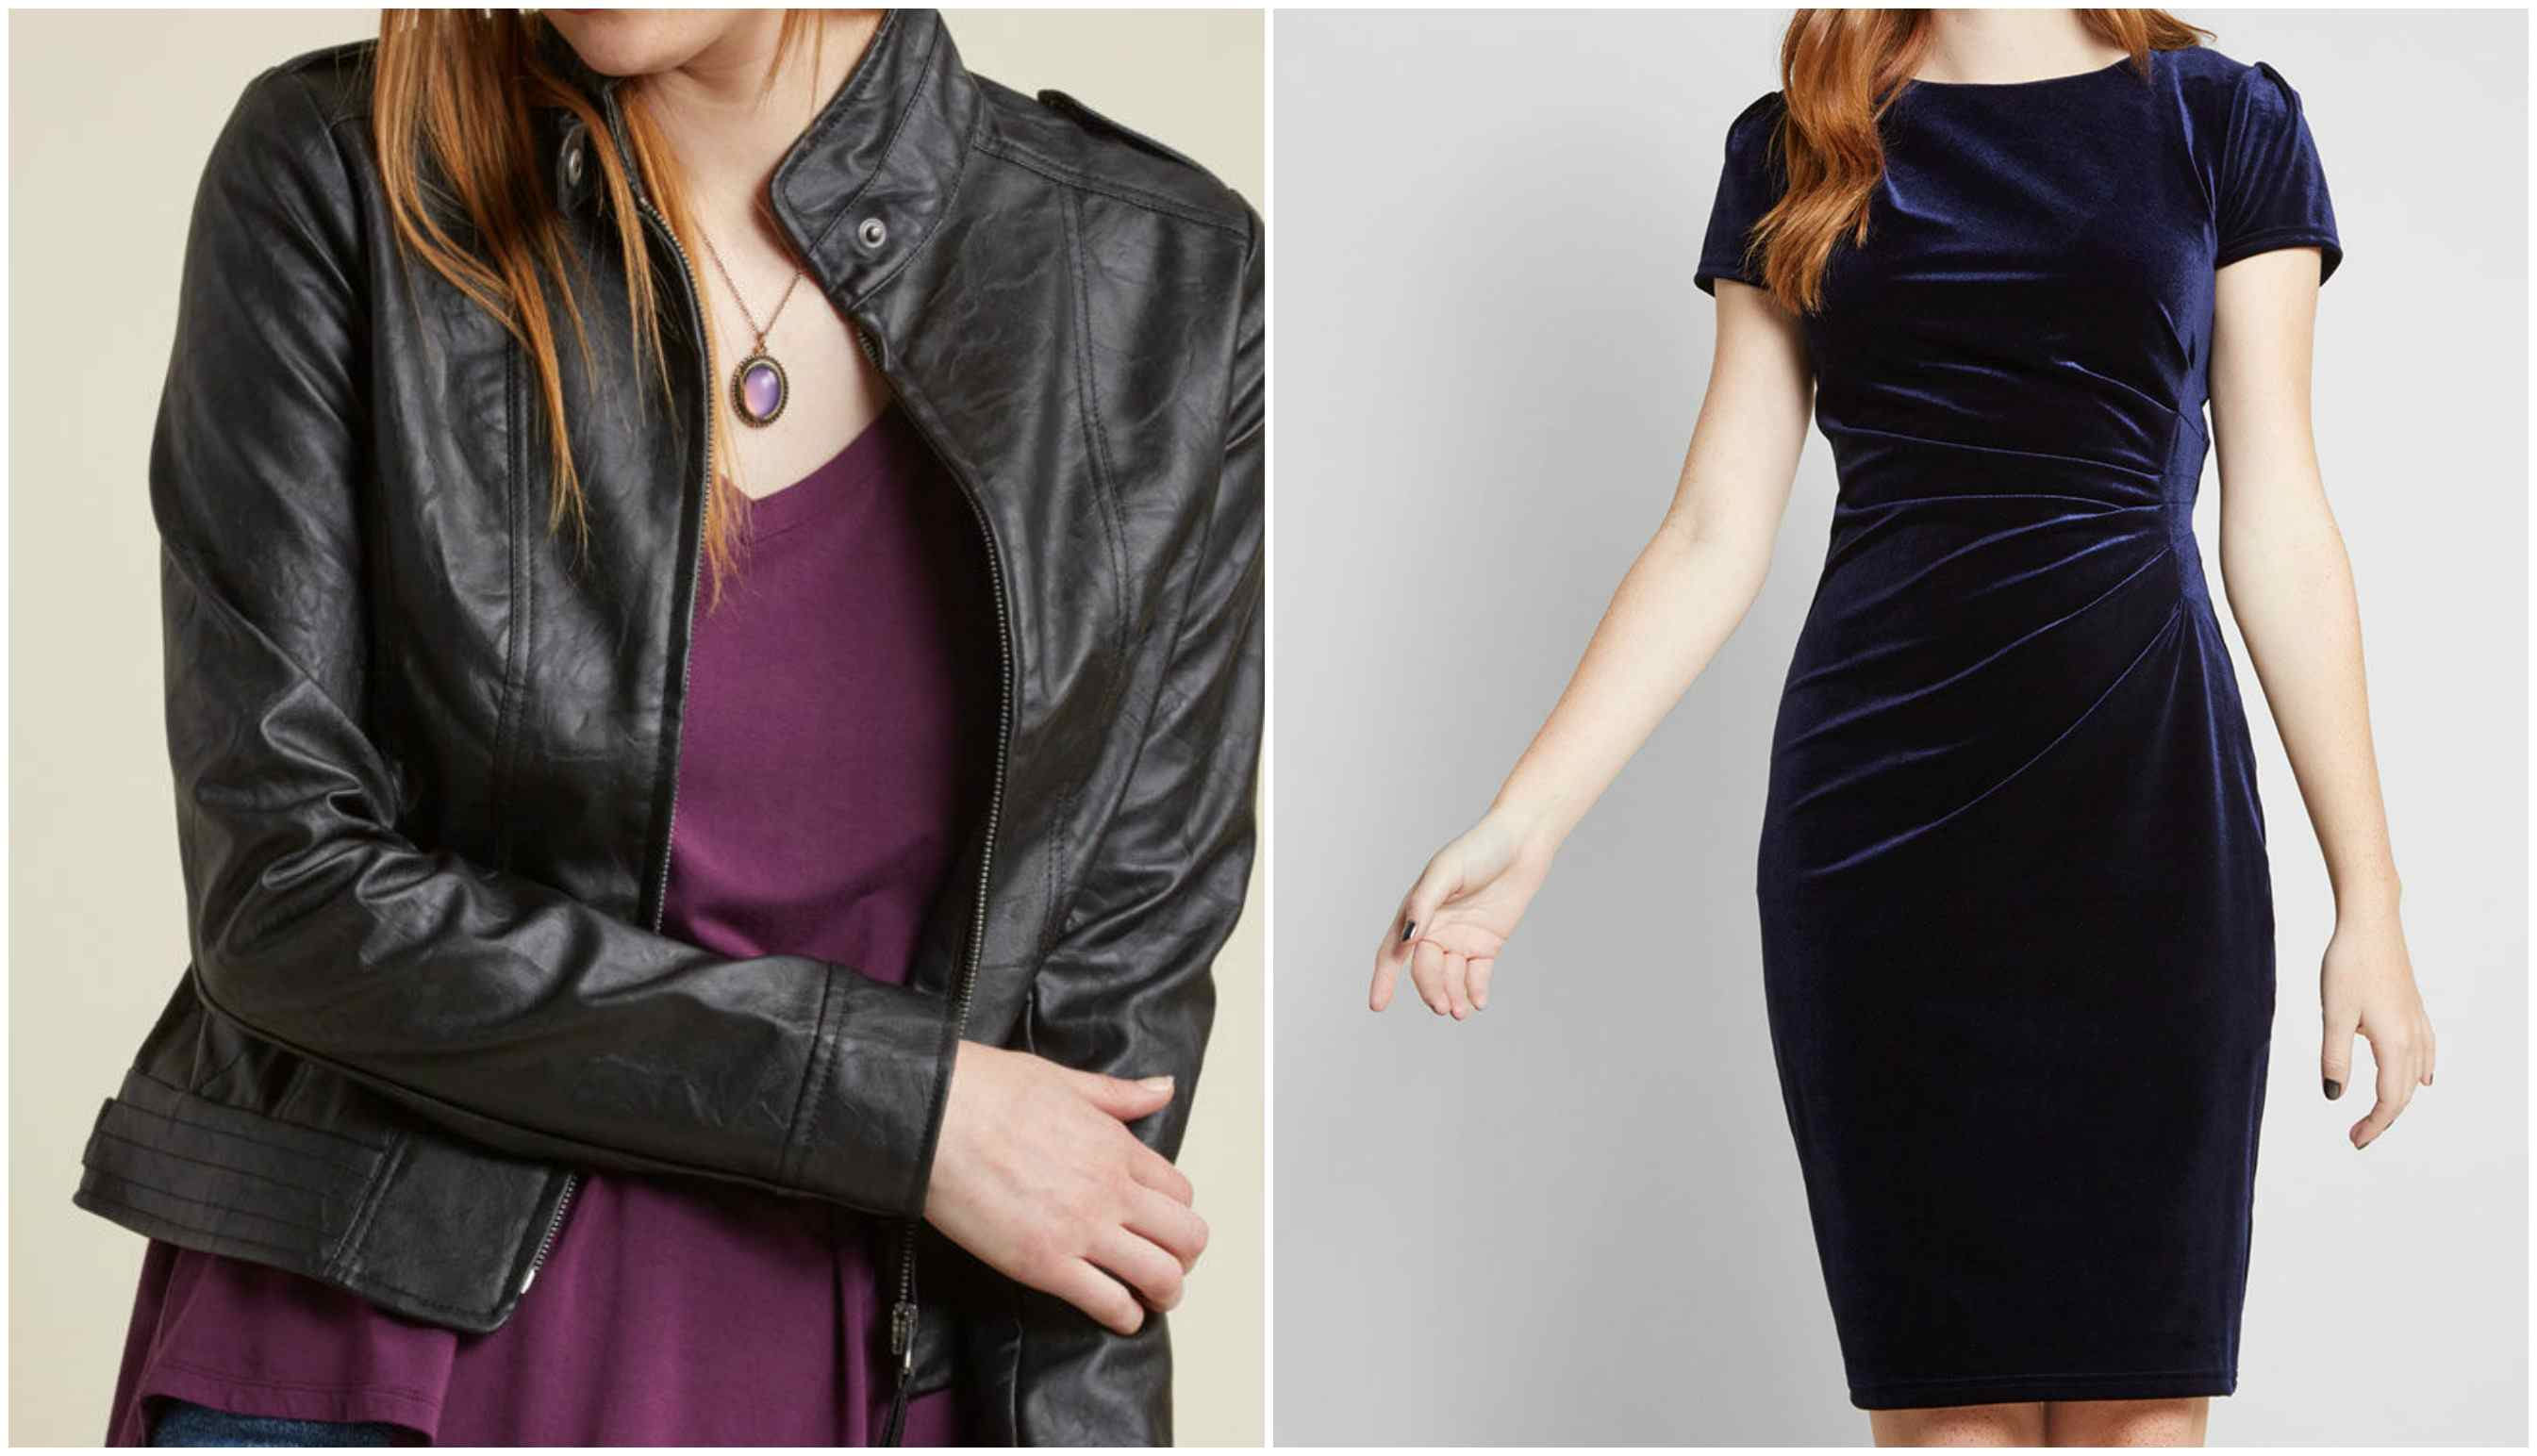 c6f43d02544 7 Ways to Wear Navy and Black Together